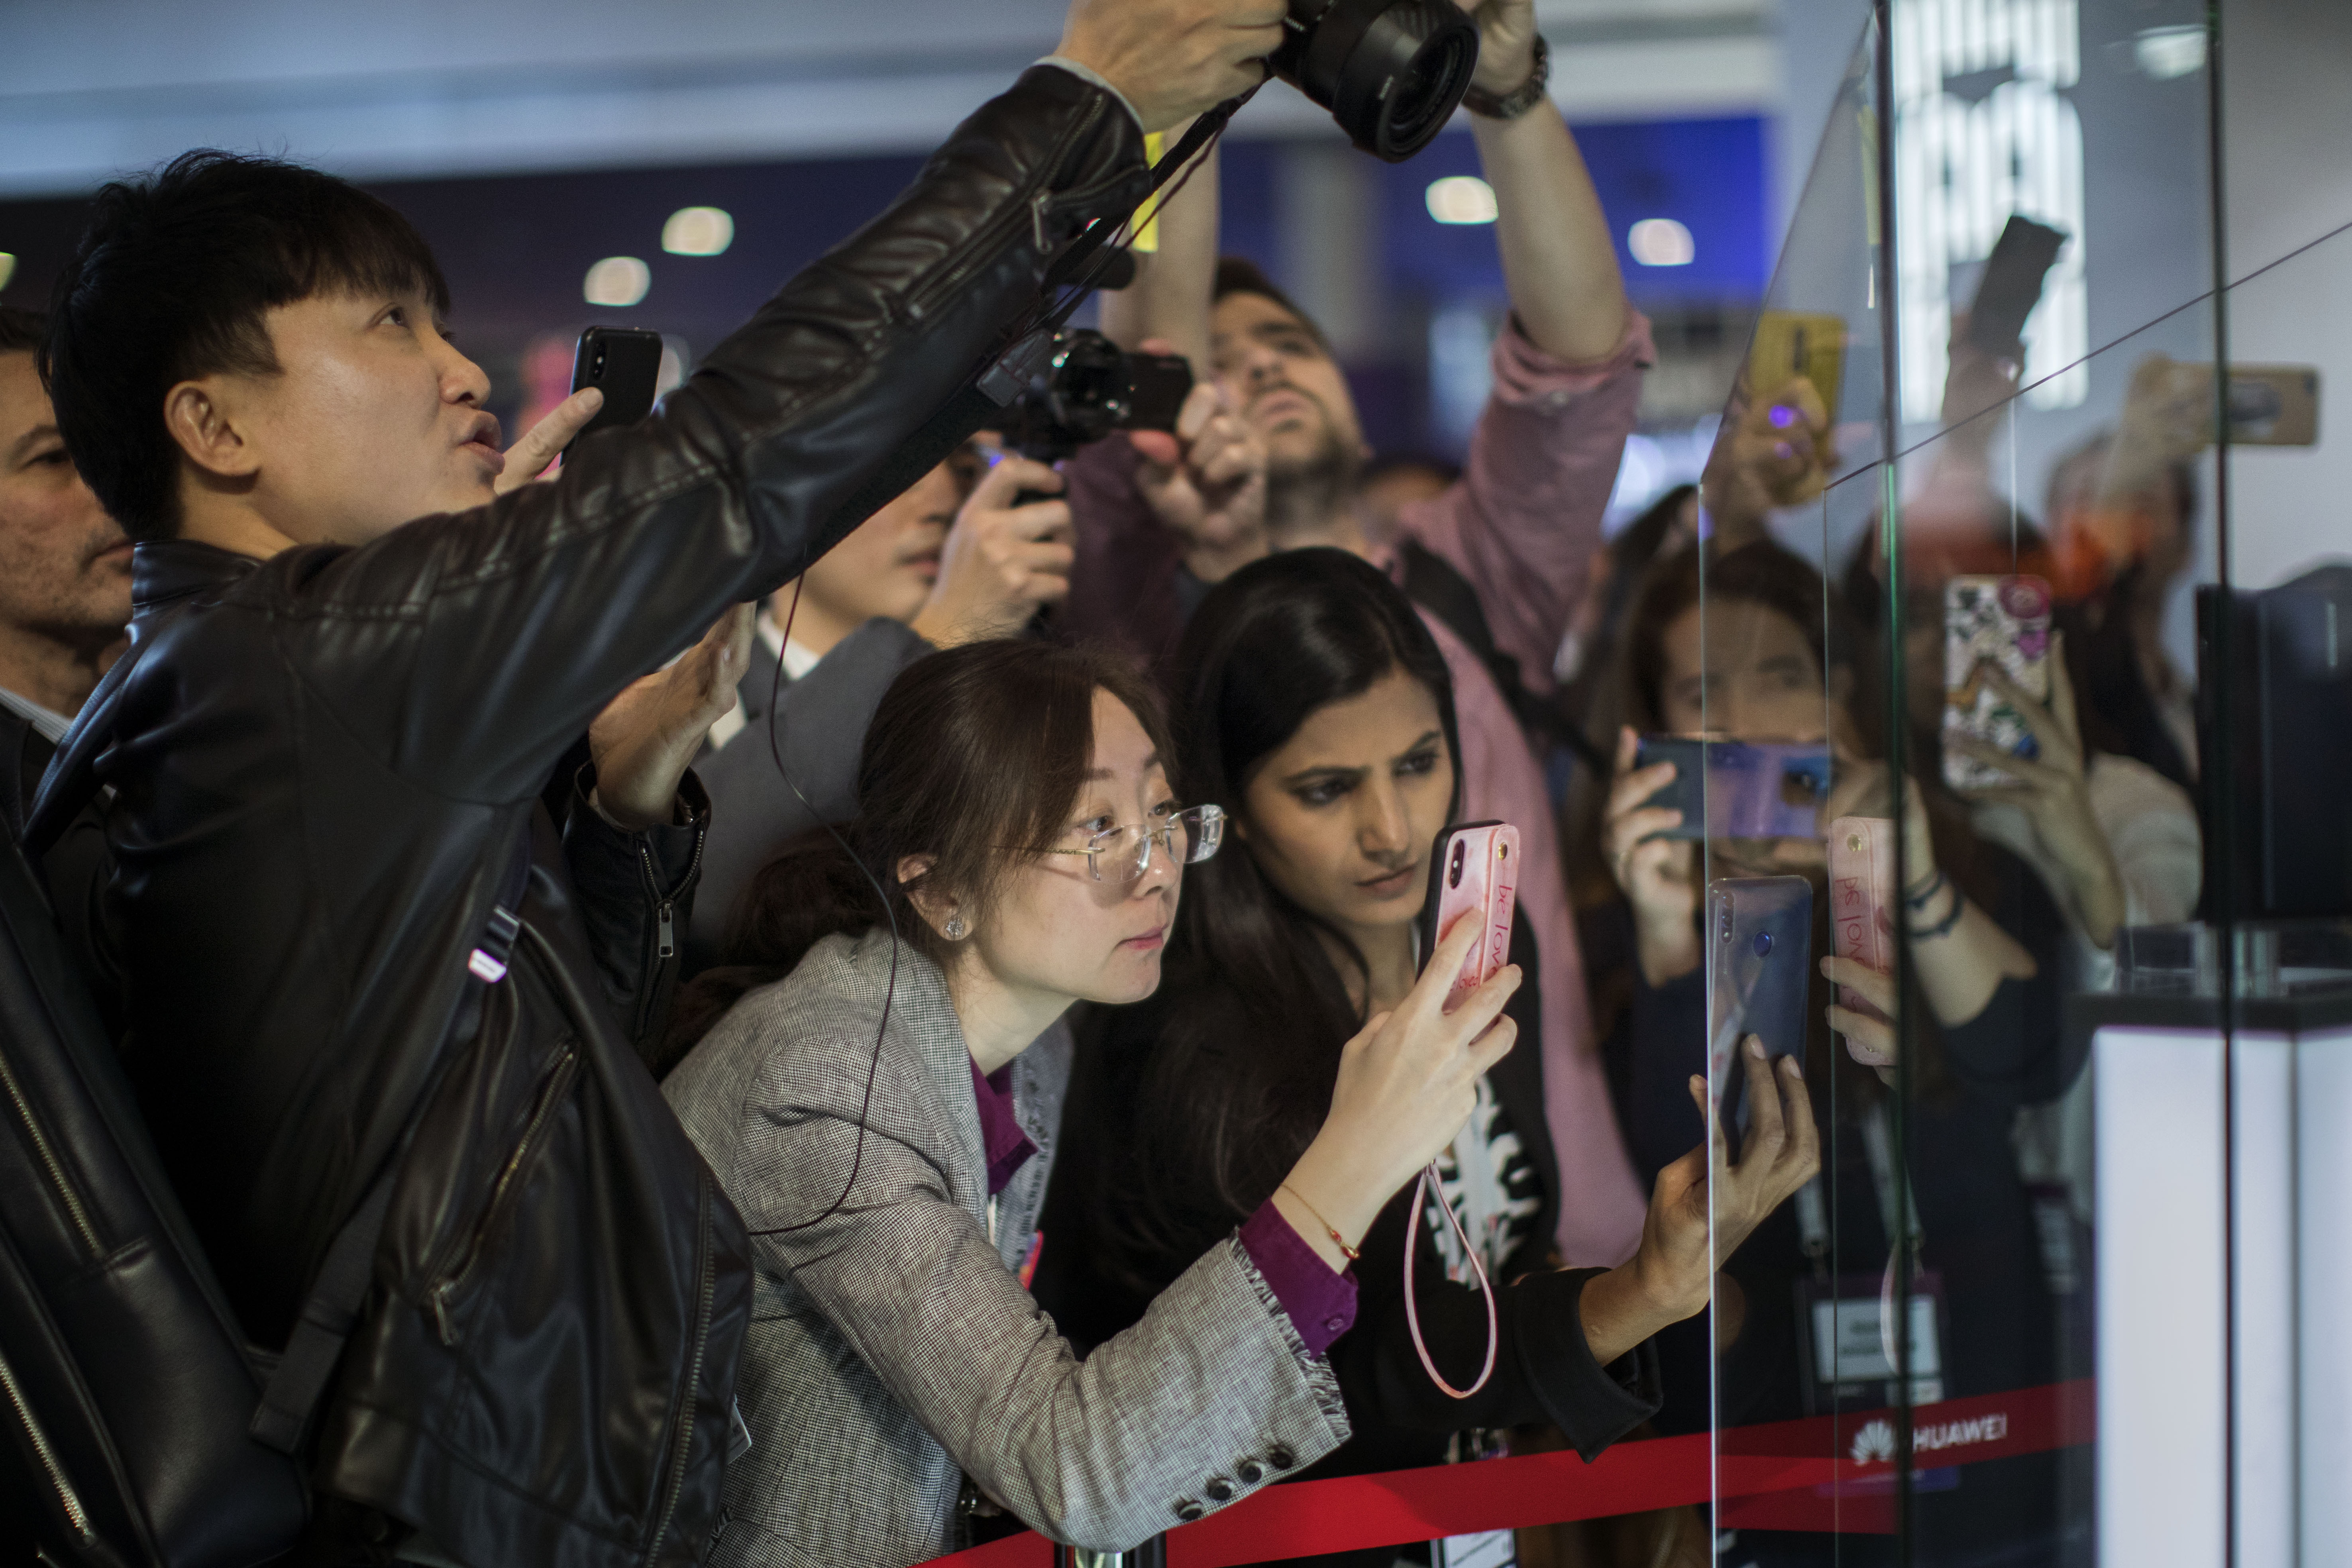 Attendees take pictures of the new Huawei Mate X foldable 5G smartphone during the Mobile World Congress wireless show, in Barcelona, Spain, Monday, Feb. 25, 2019.  (AP Photo/Emilio Morenatti)